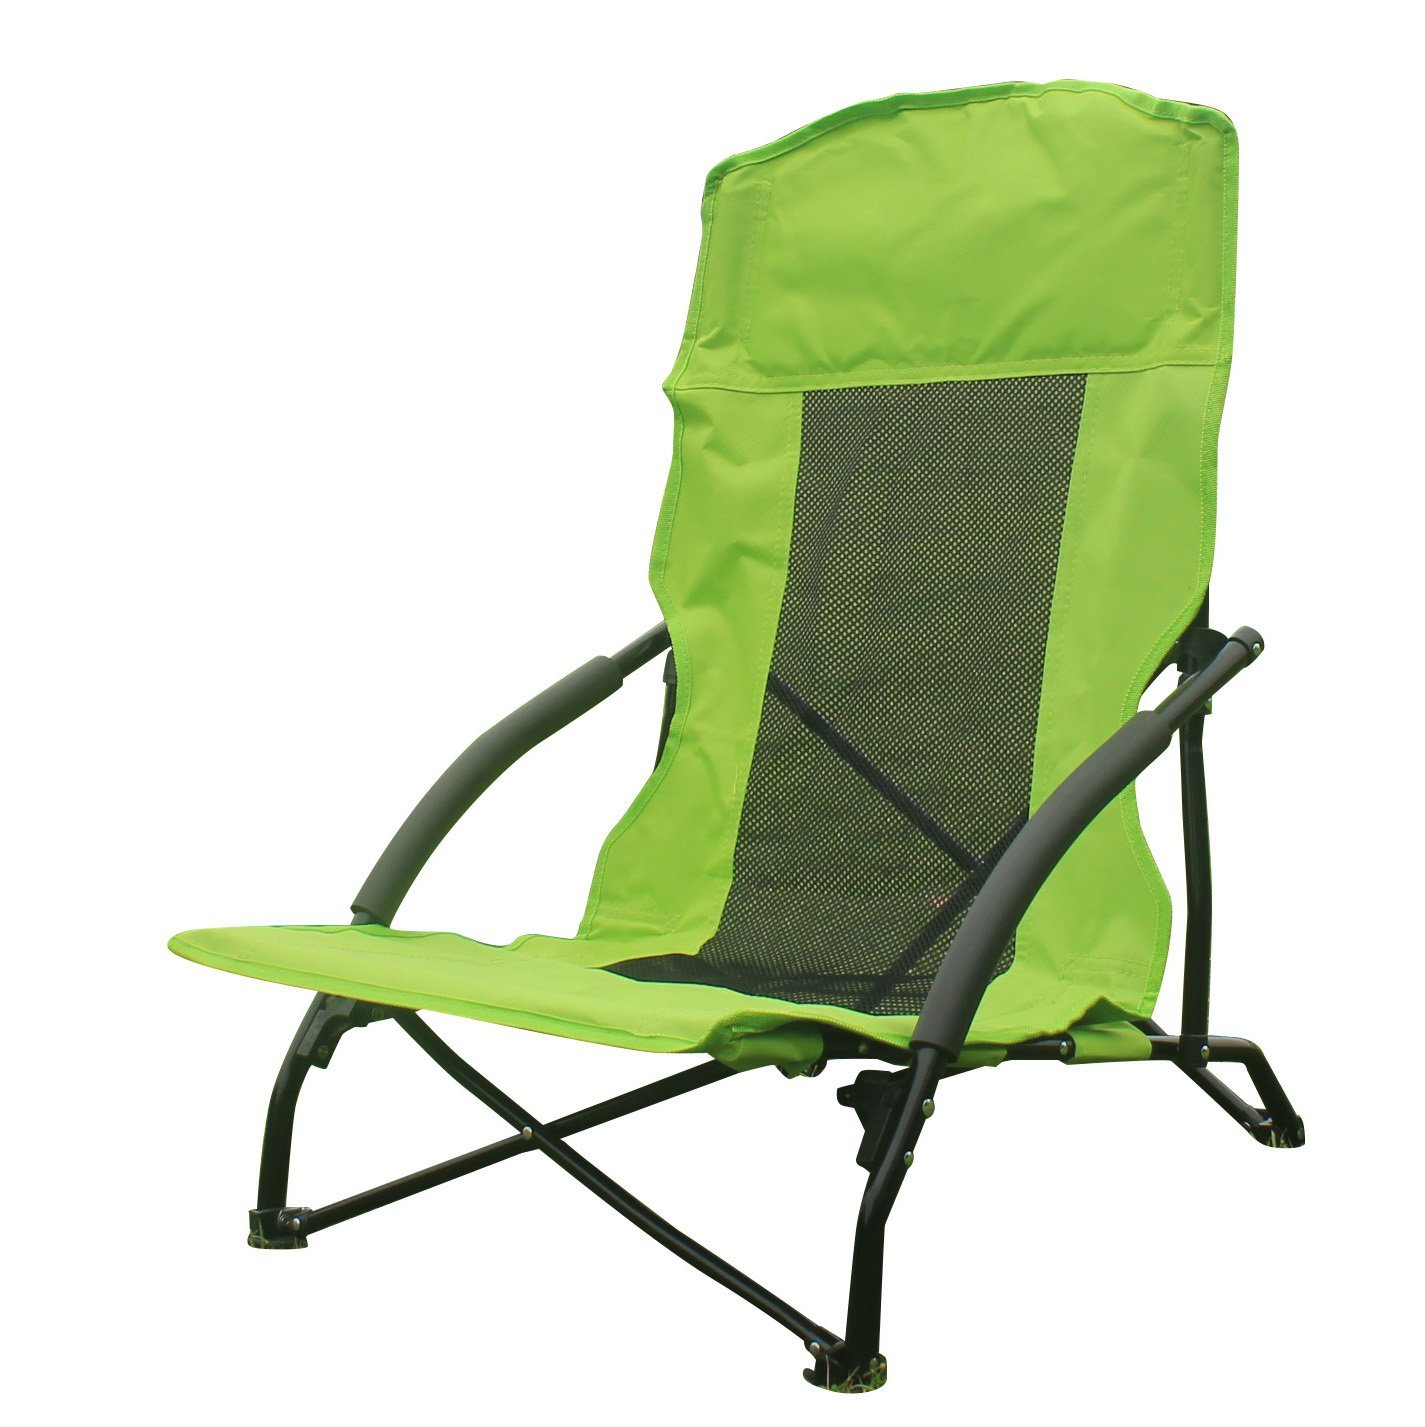 Amazon.com : Funs Portable Heavy Duty Folding Chair, Compact In A Bag. Best  For Outdoor Camping Hiking Beach Activities (Green) : Sports U0026 Outdoors